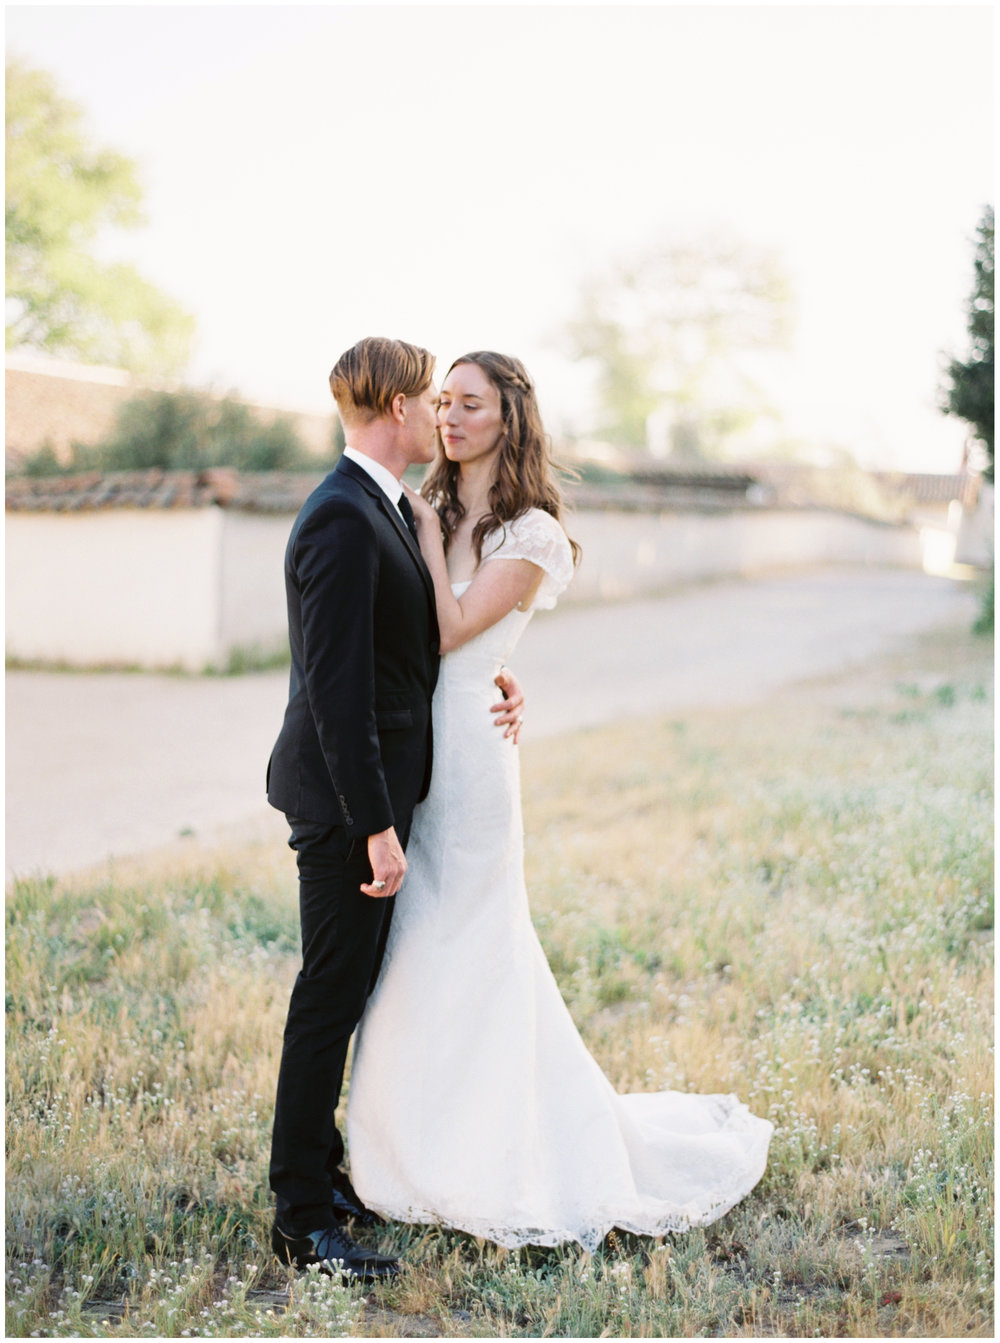 Santa_Barbara_Wedding_Photographer_Pinnel_Photography_La_Purisima_Mission-026.jpg